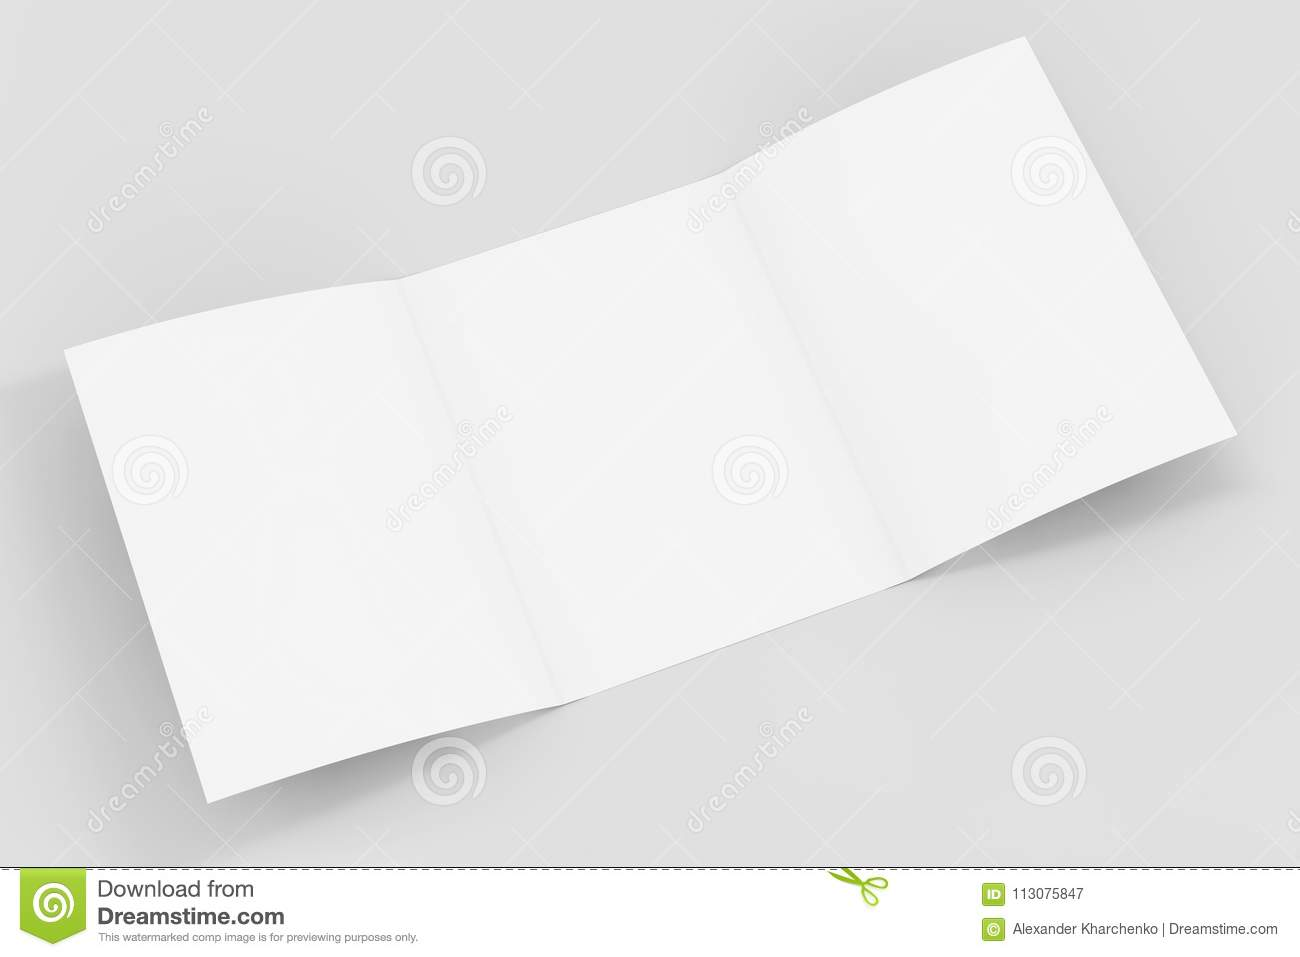 White Folded Mockup Brochure Paper With Free Space For Yours Design